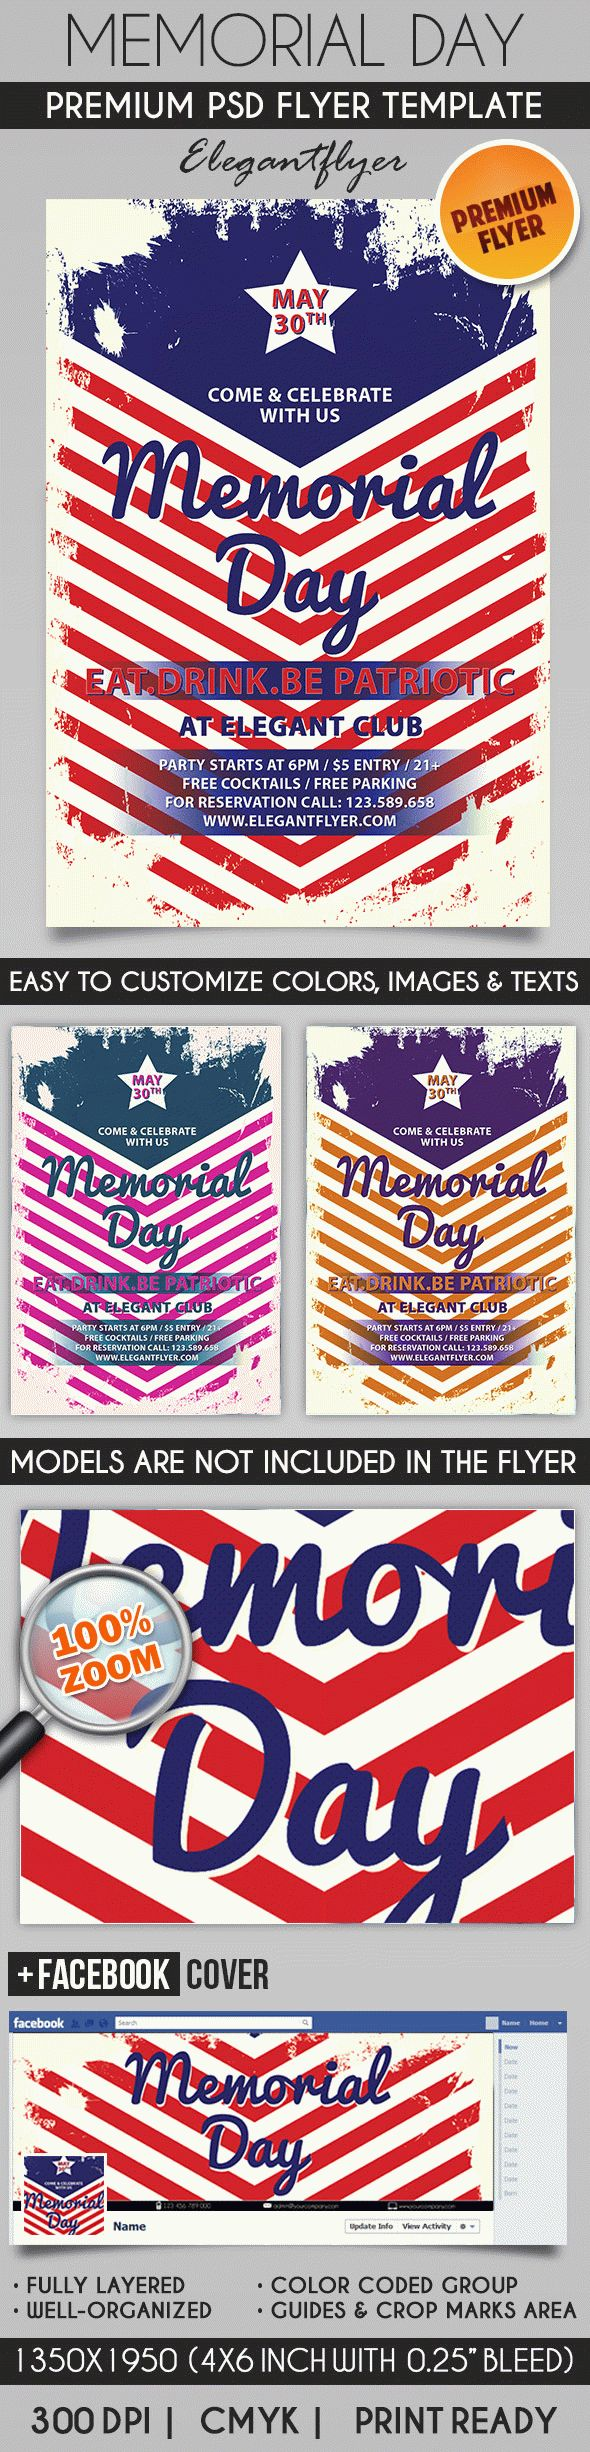 Happy Memorial Day Weekend PSD Flyer